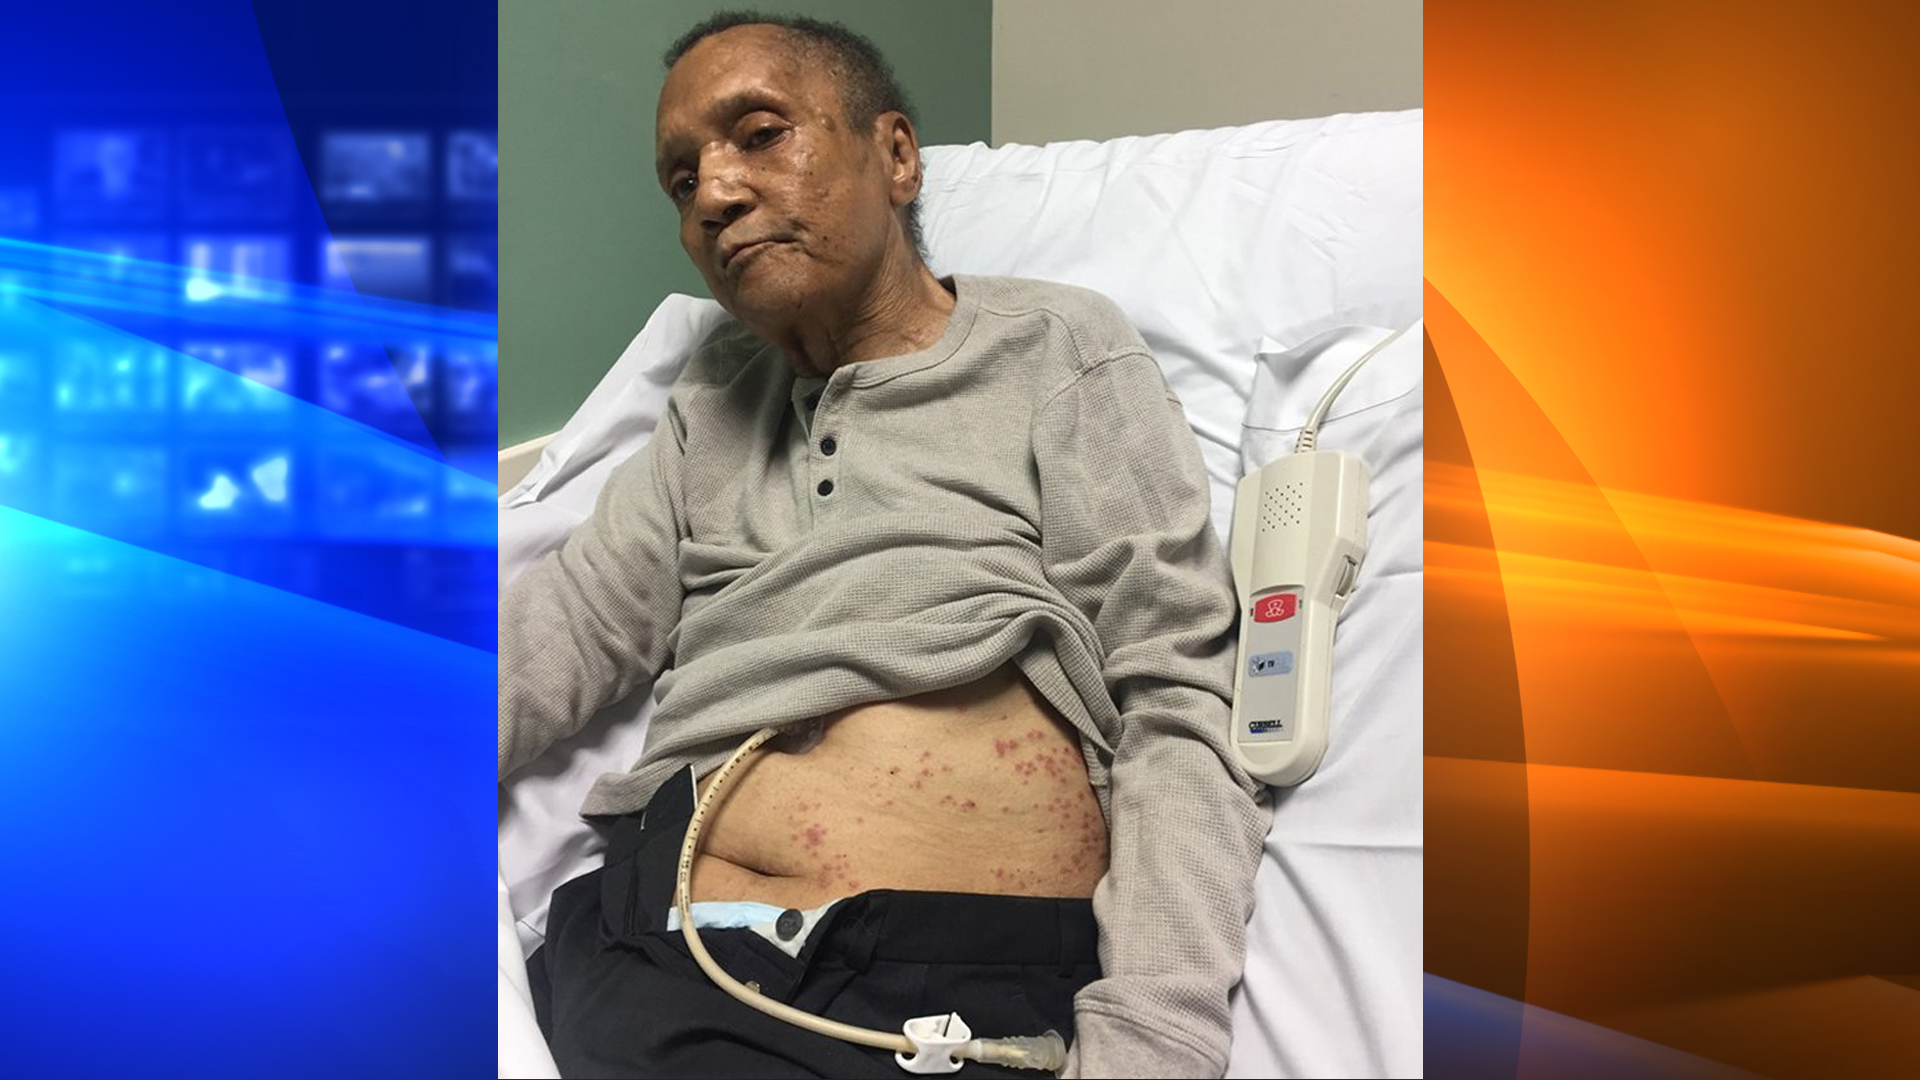 Joel Marrable was twice found covered in ants days before he died in a veterans assisted-living facility in Atlanta. (Credit: Courtesy Laquana Ross)